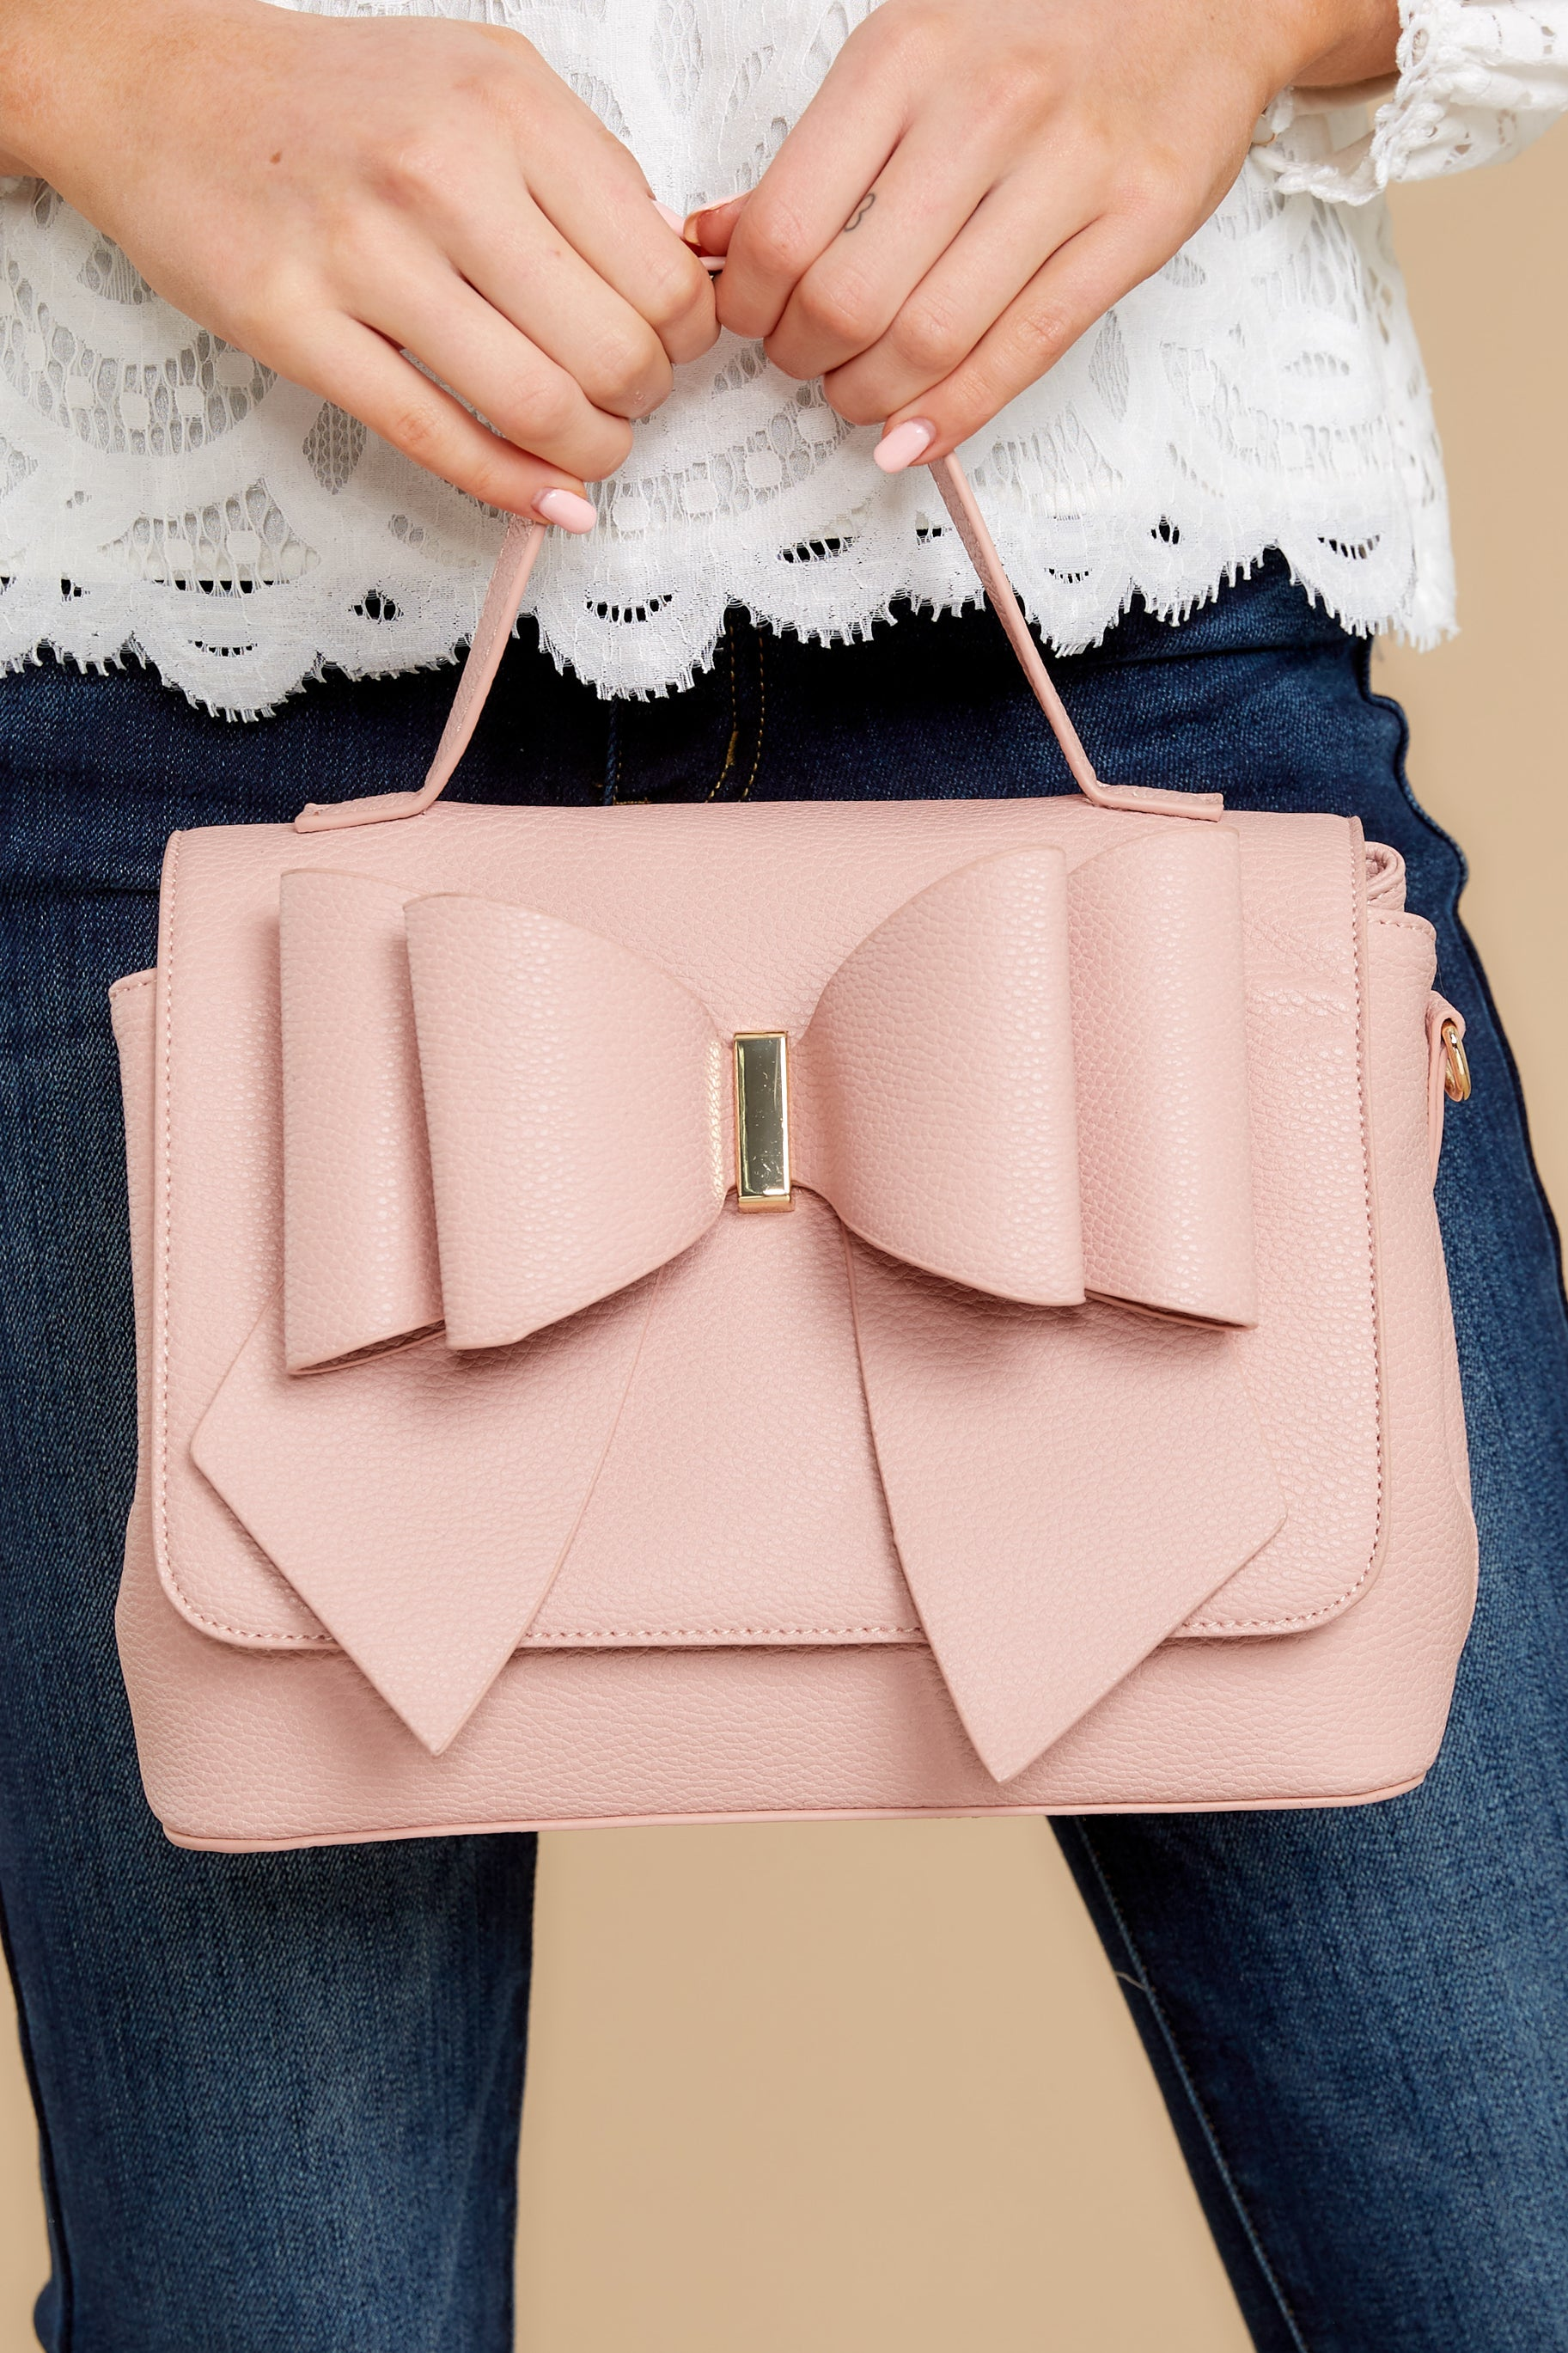 1950s Handbags, Purses, and Evening Bag Styles Bet On It Pink Bag $42.00 AT vintagedancer.com